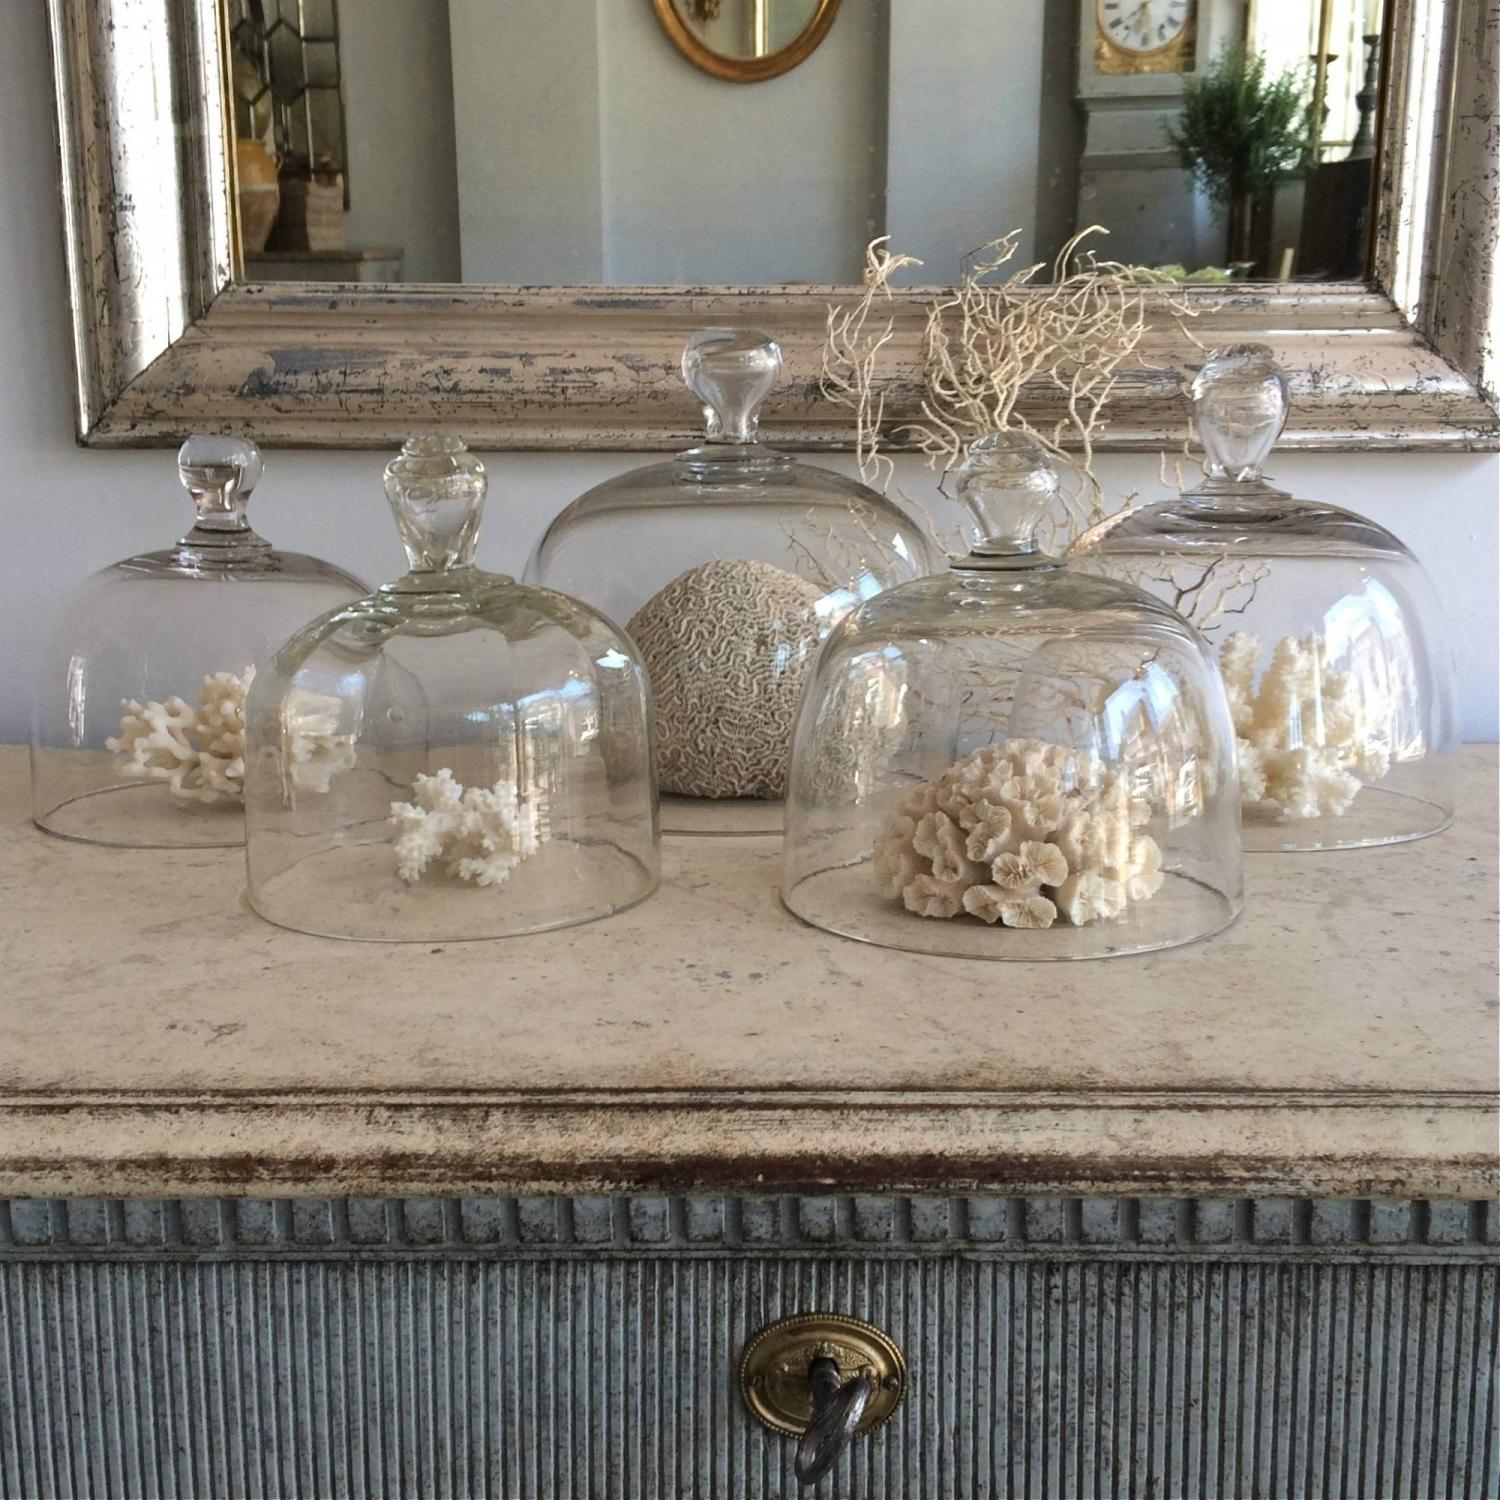 FINE COLLECTION OF FRENCH GLASS CLOCHES